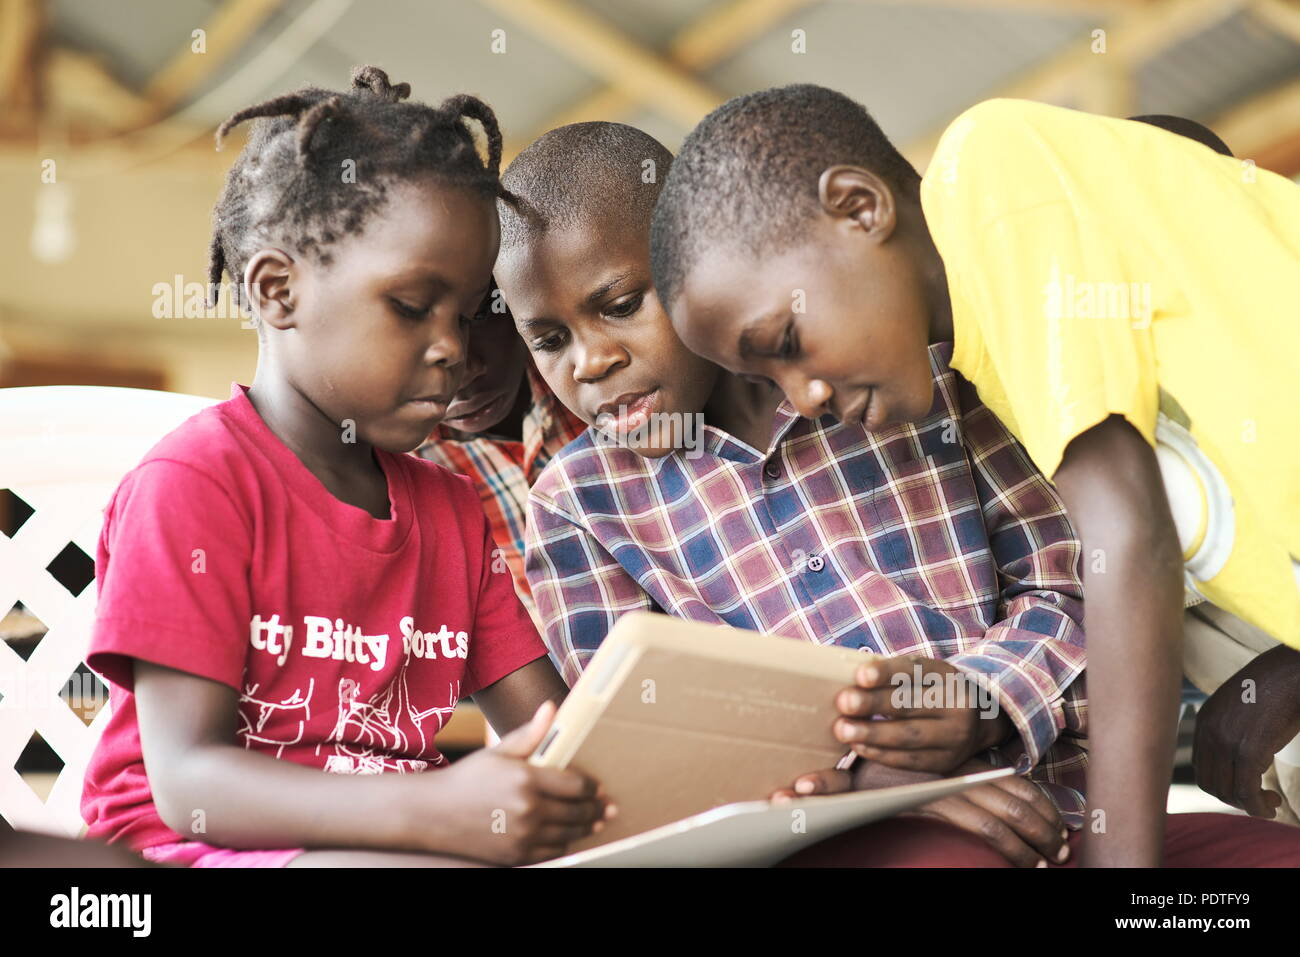 Group of young wealthy ugandan children wearing smart modern clothes gather in a group taking turns to use an IPAD - Stock Image